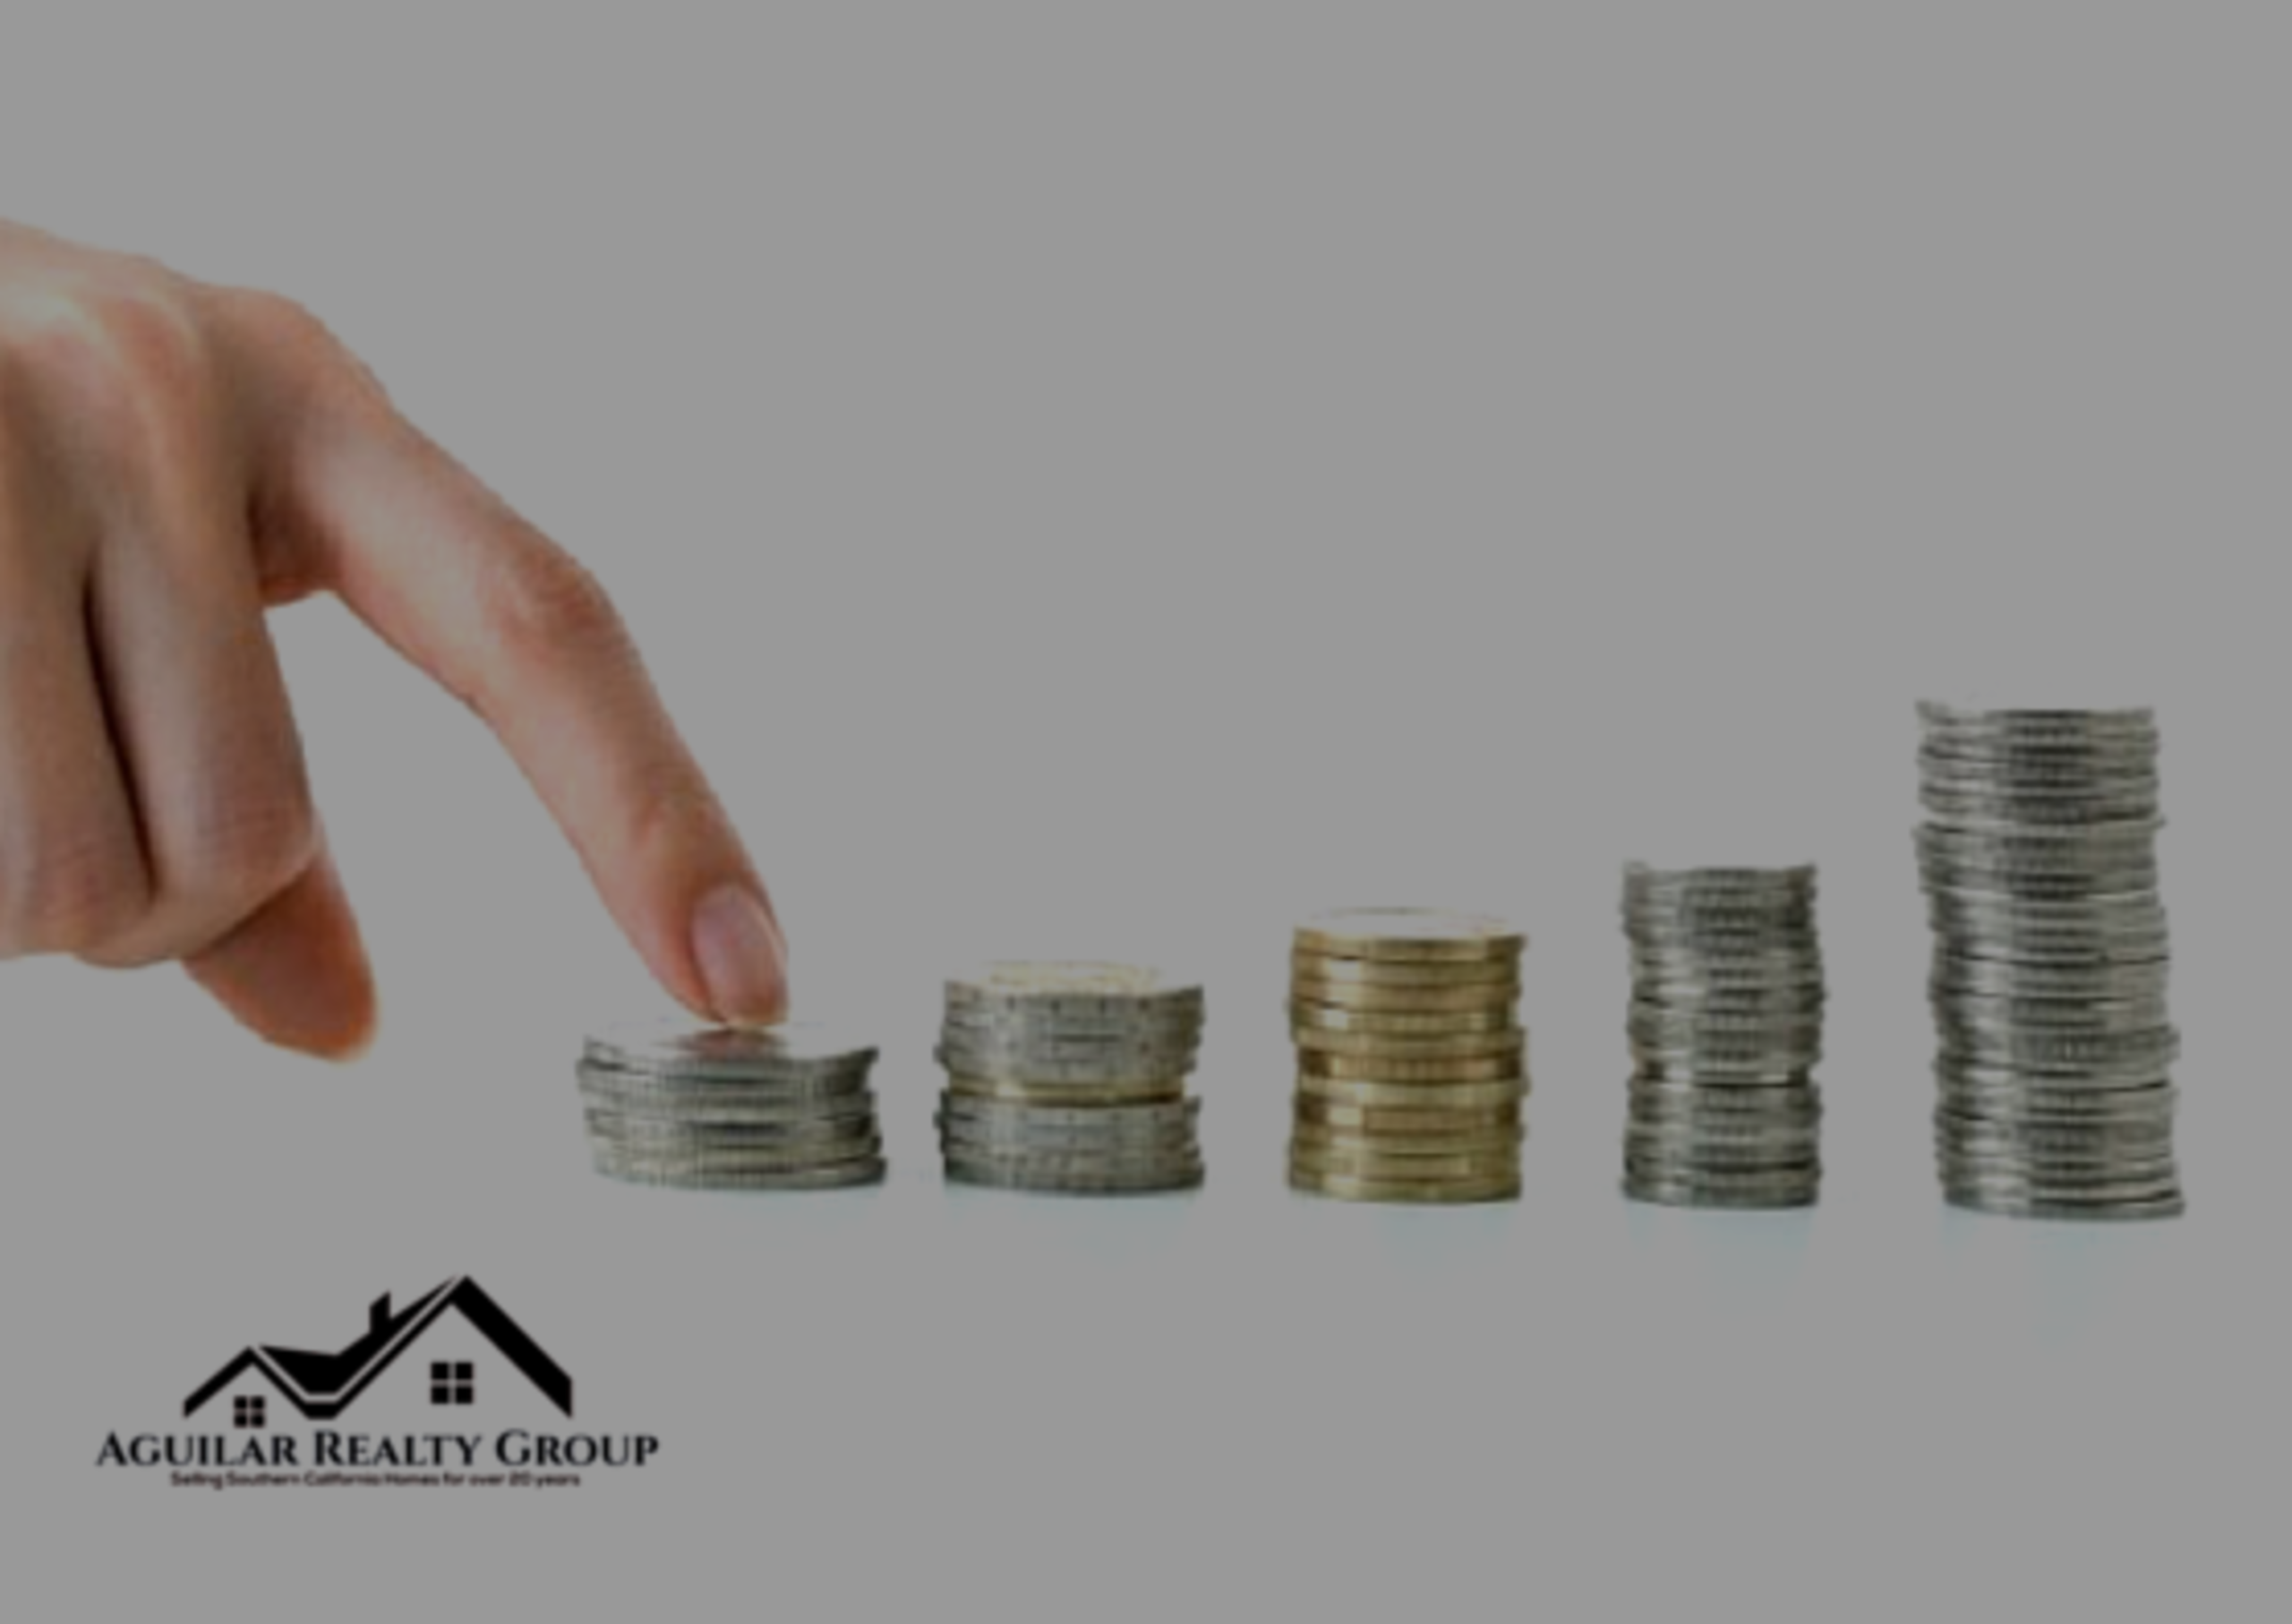 Refinancing: The Right Move?